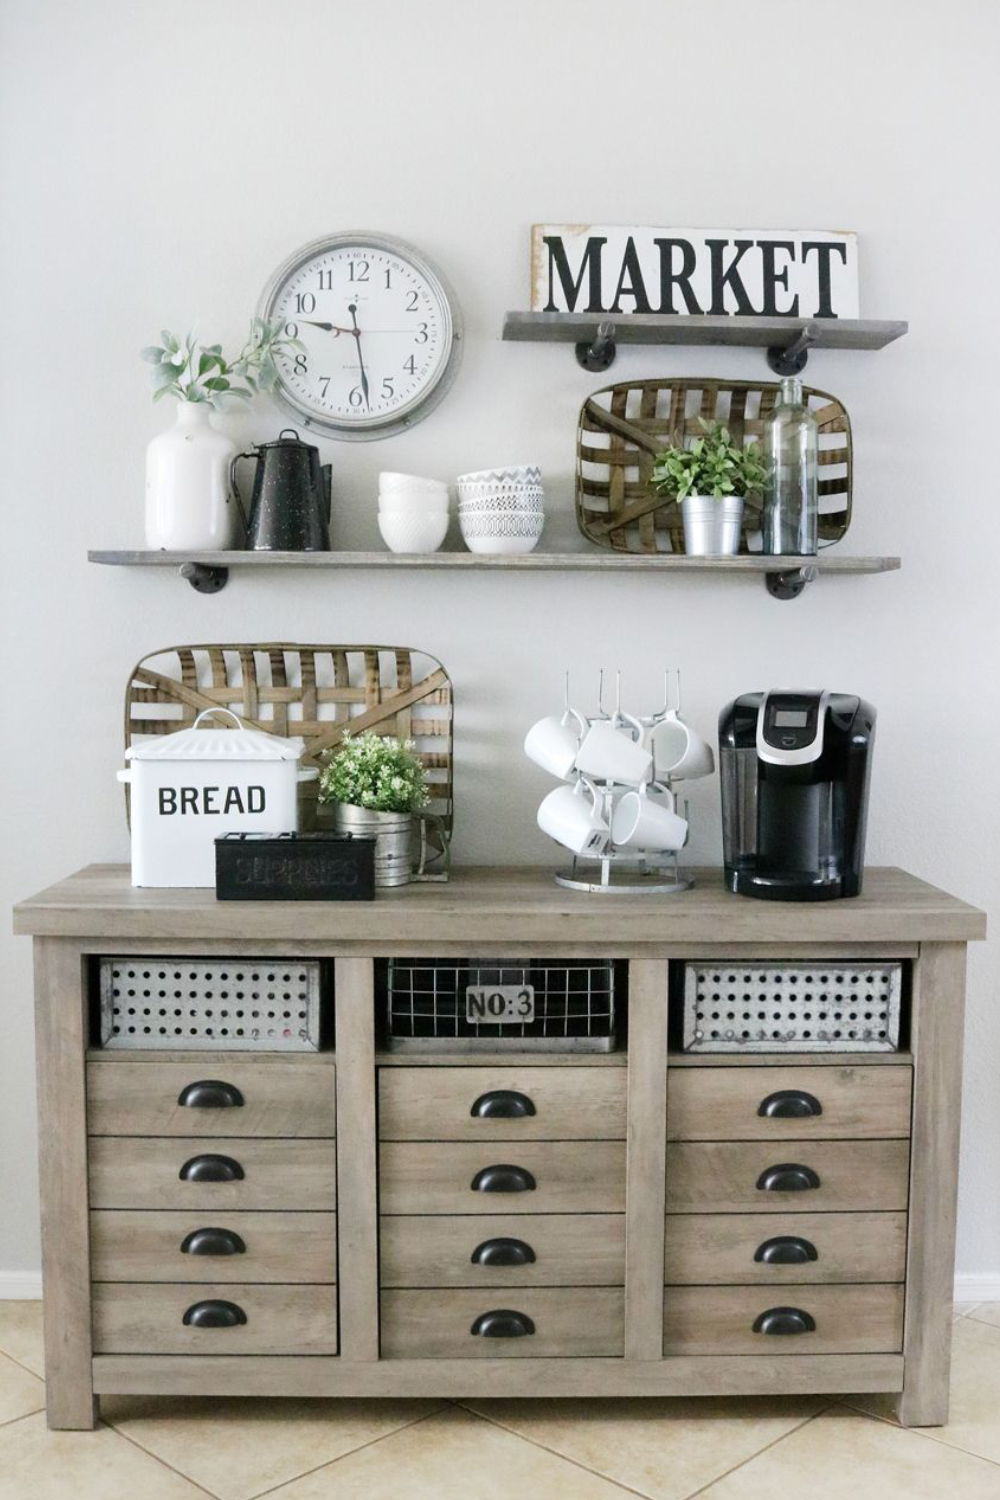 Magnificent Coffee Themed Decor: Our Picks for the Kitchen